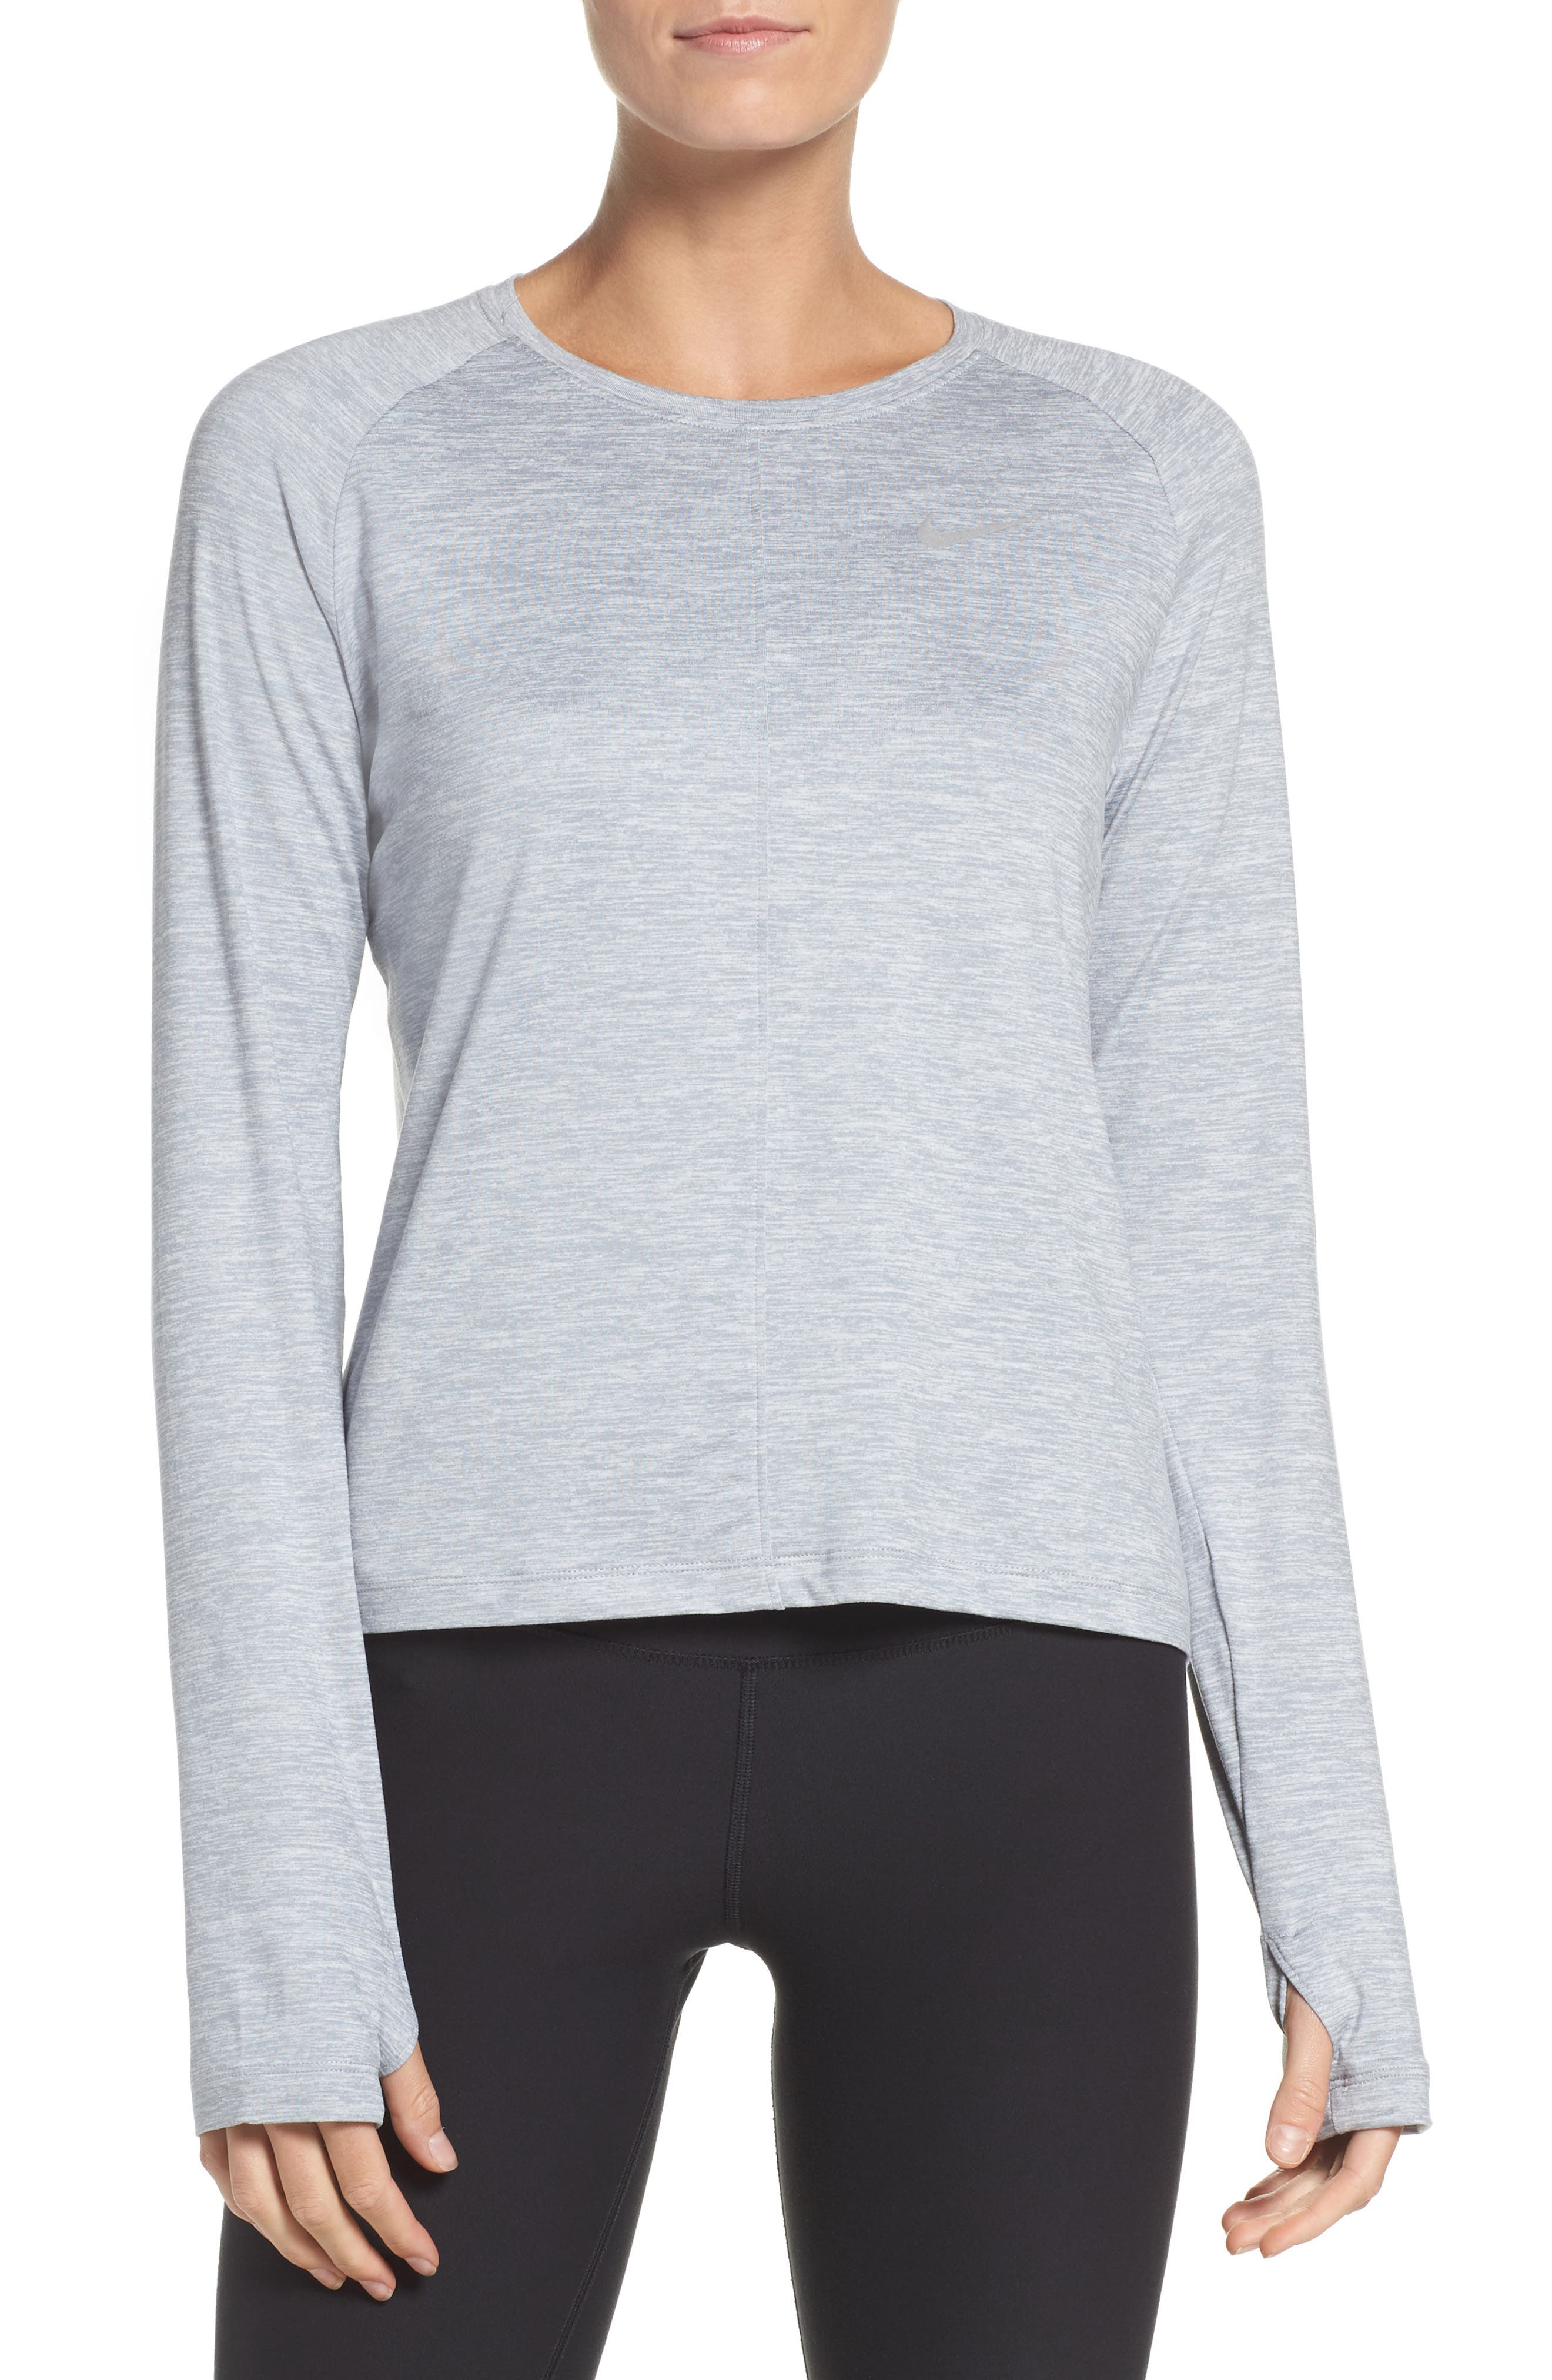 Dry Element Crop Top,                         Main,                         color, Wolf Grey/ Heather